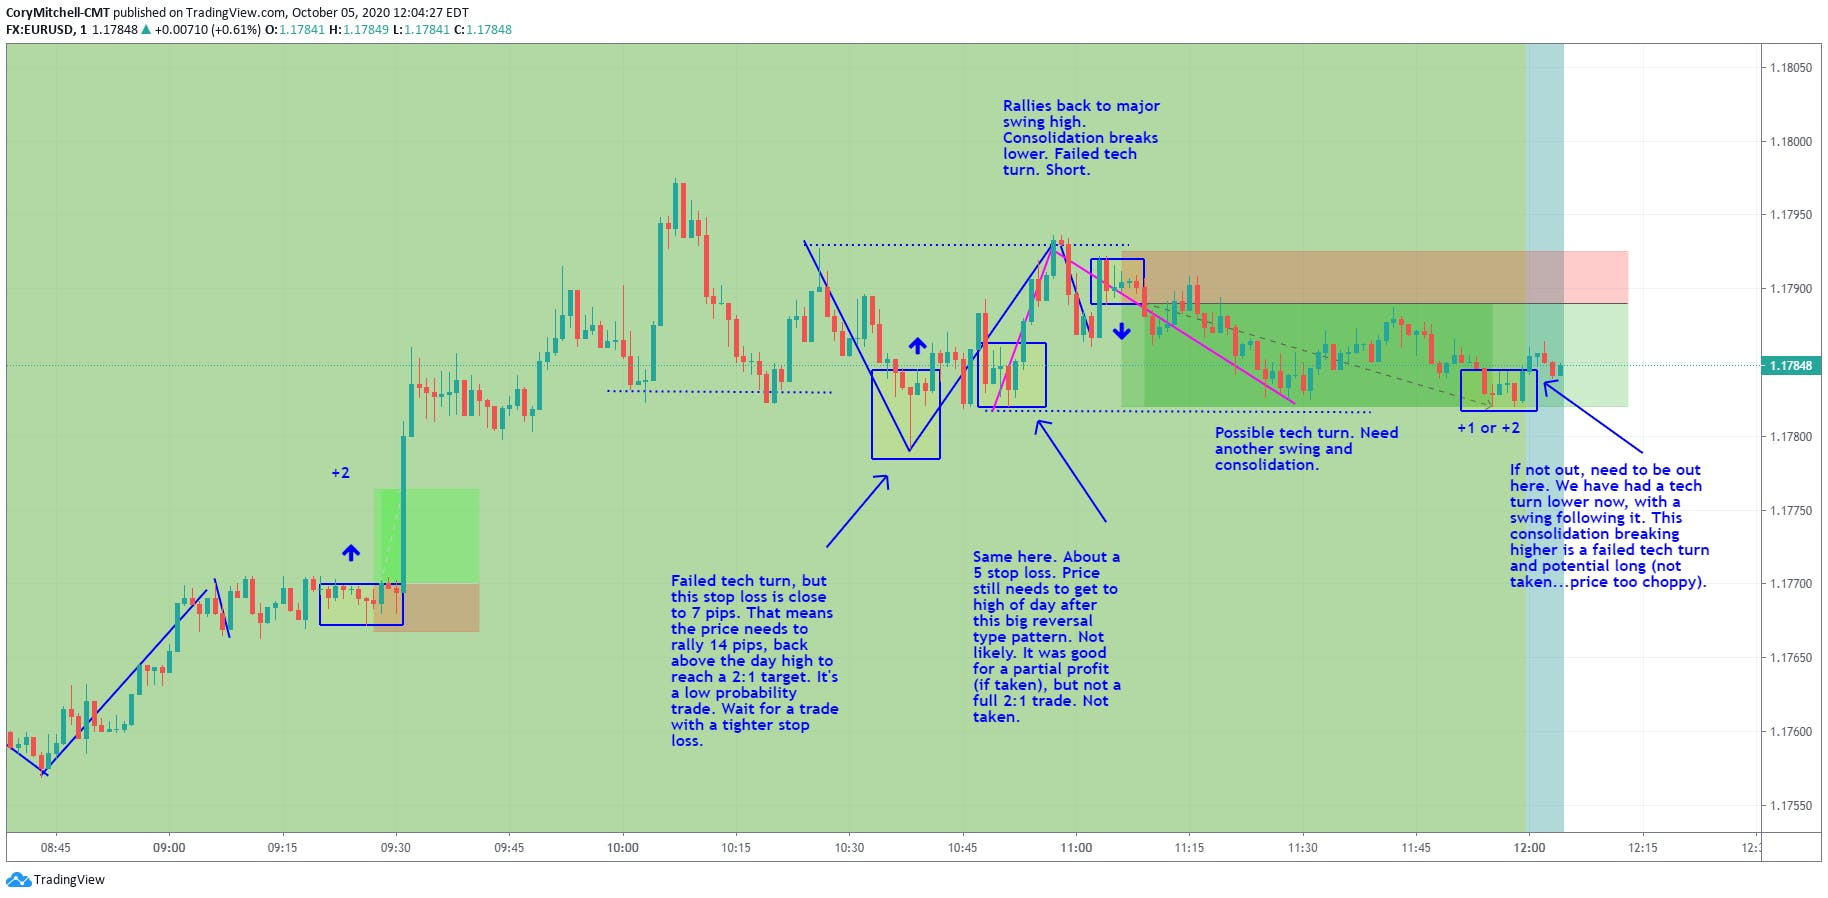 tech turn and failed tech turn forex day trading strategies in EURUSD Oct. 5